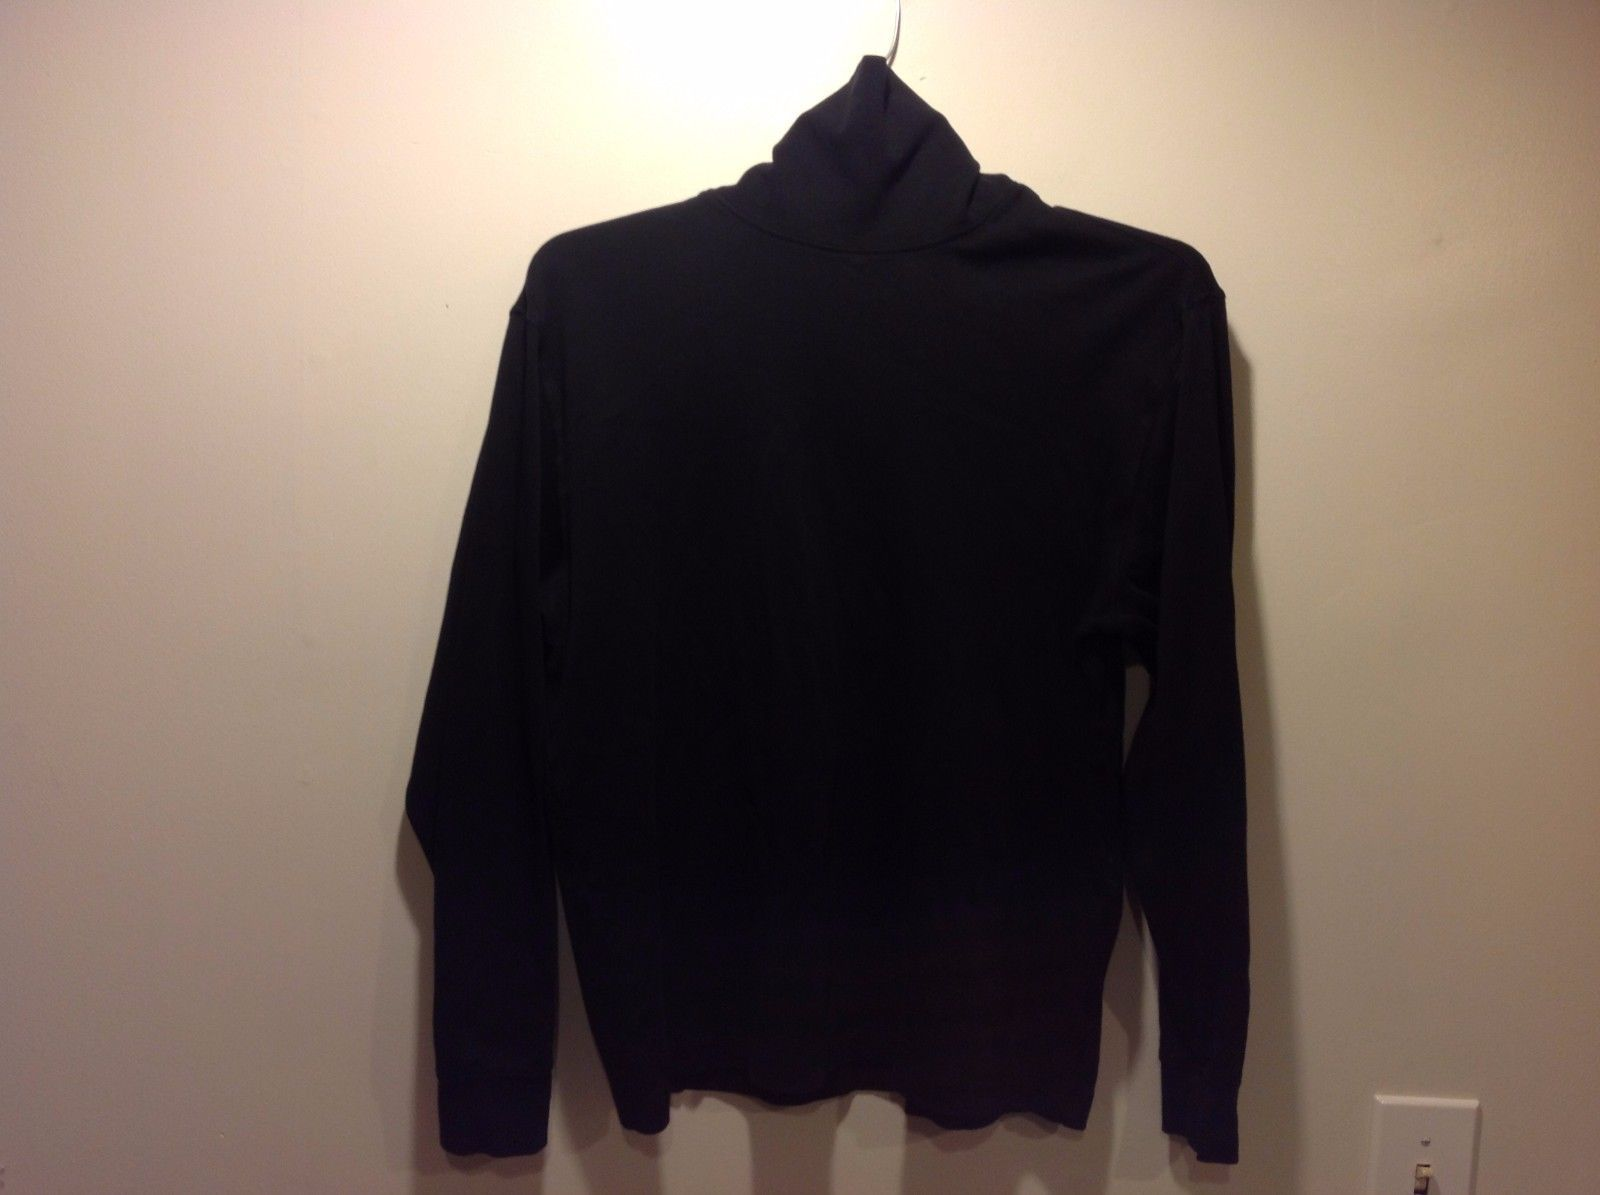 Ladies Black Turtleneck Sweater by St. John's Bay Sz M